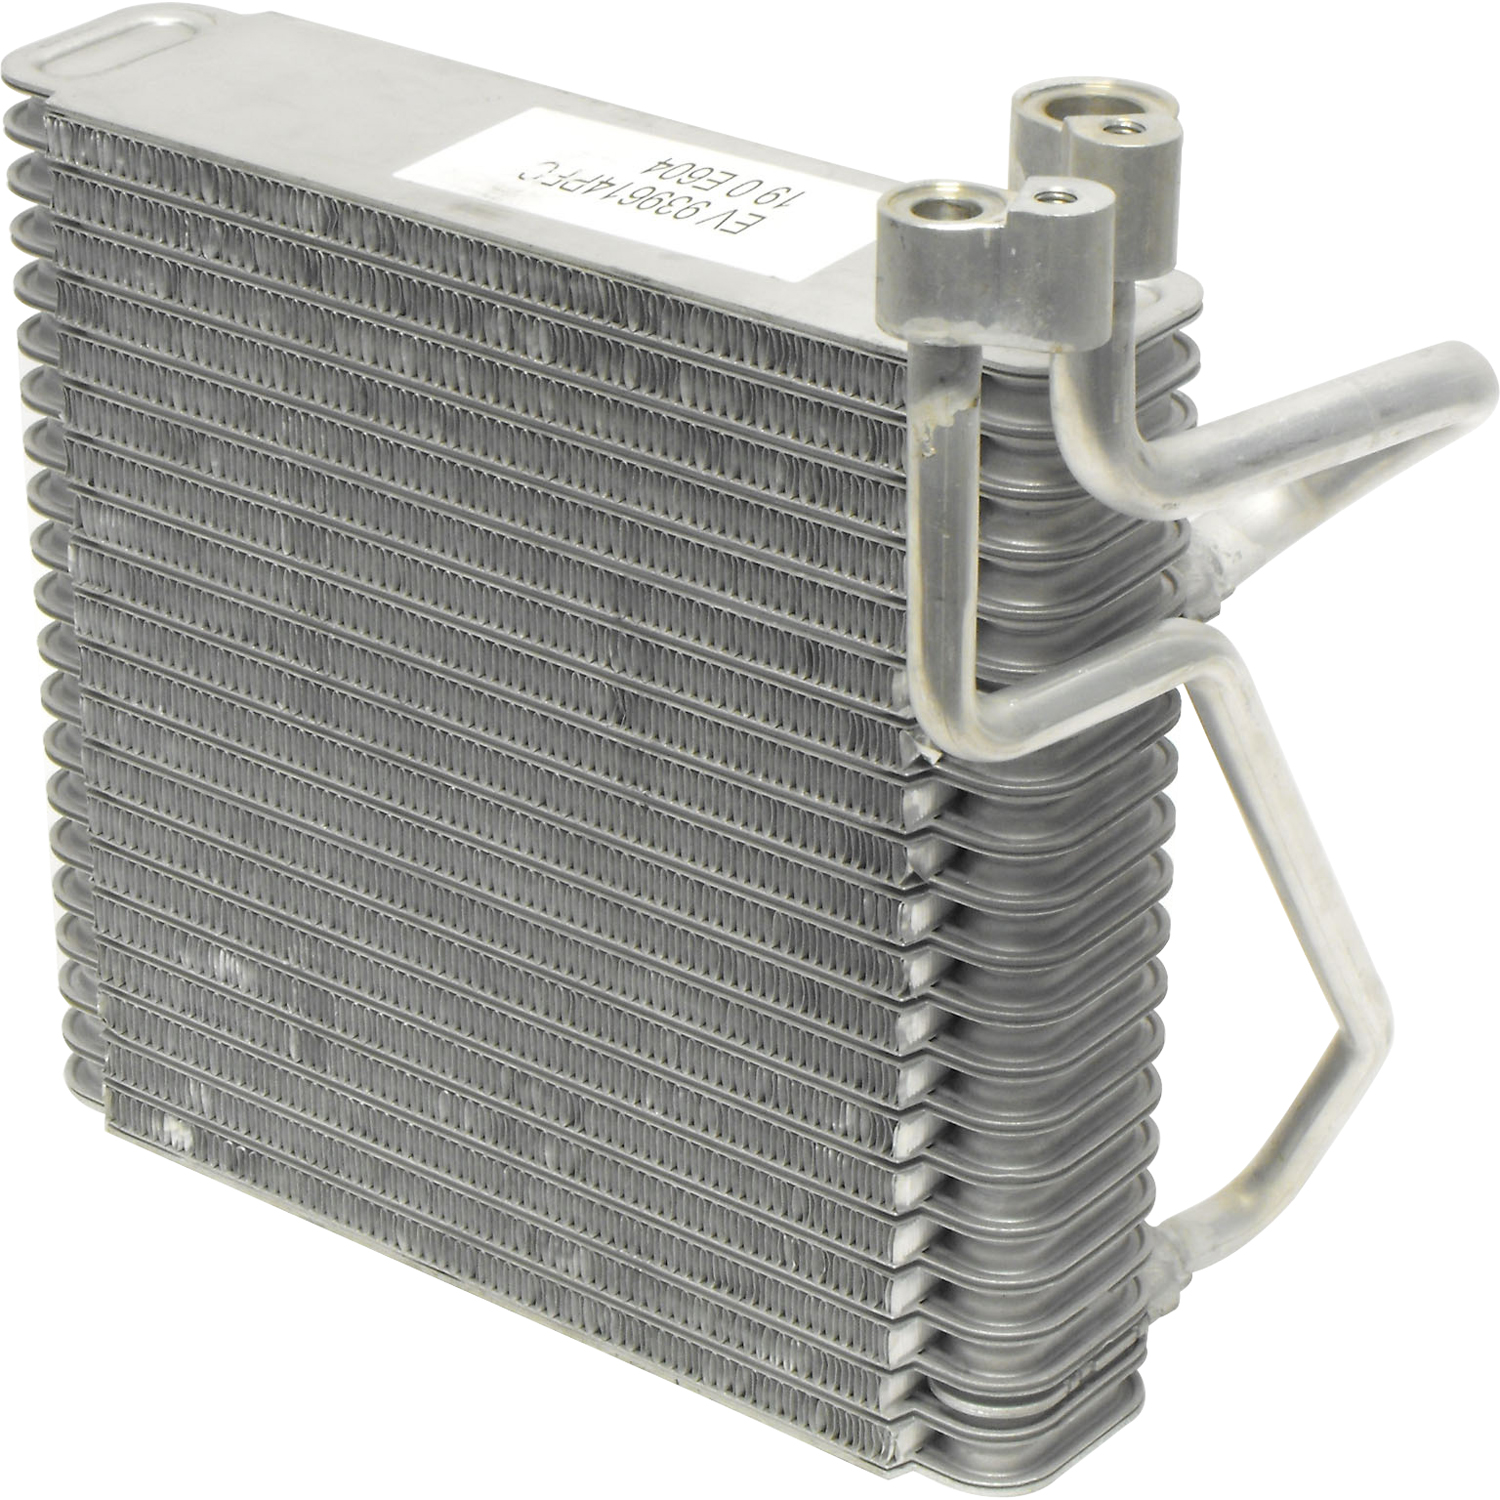 New A/C Evaporator EV 939614PFXC - 52498635 Trailblazer Envoy Trailblazer EXT